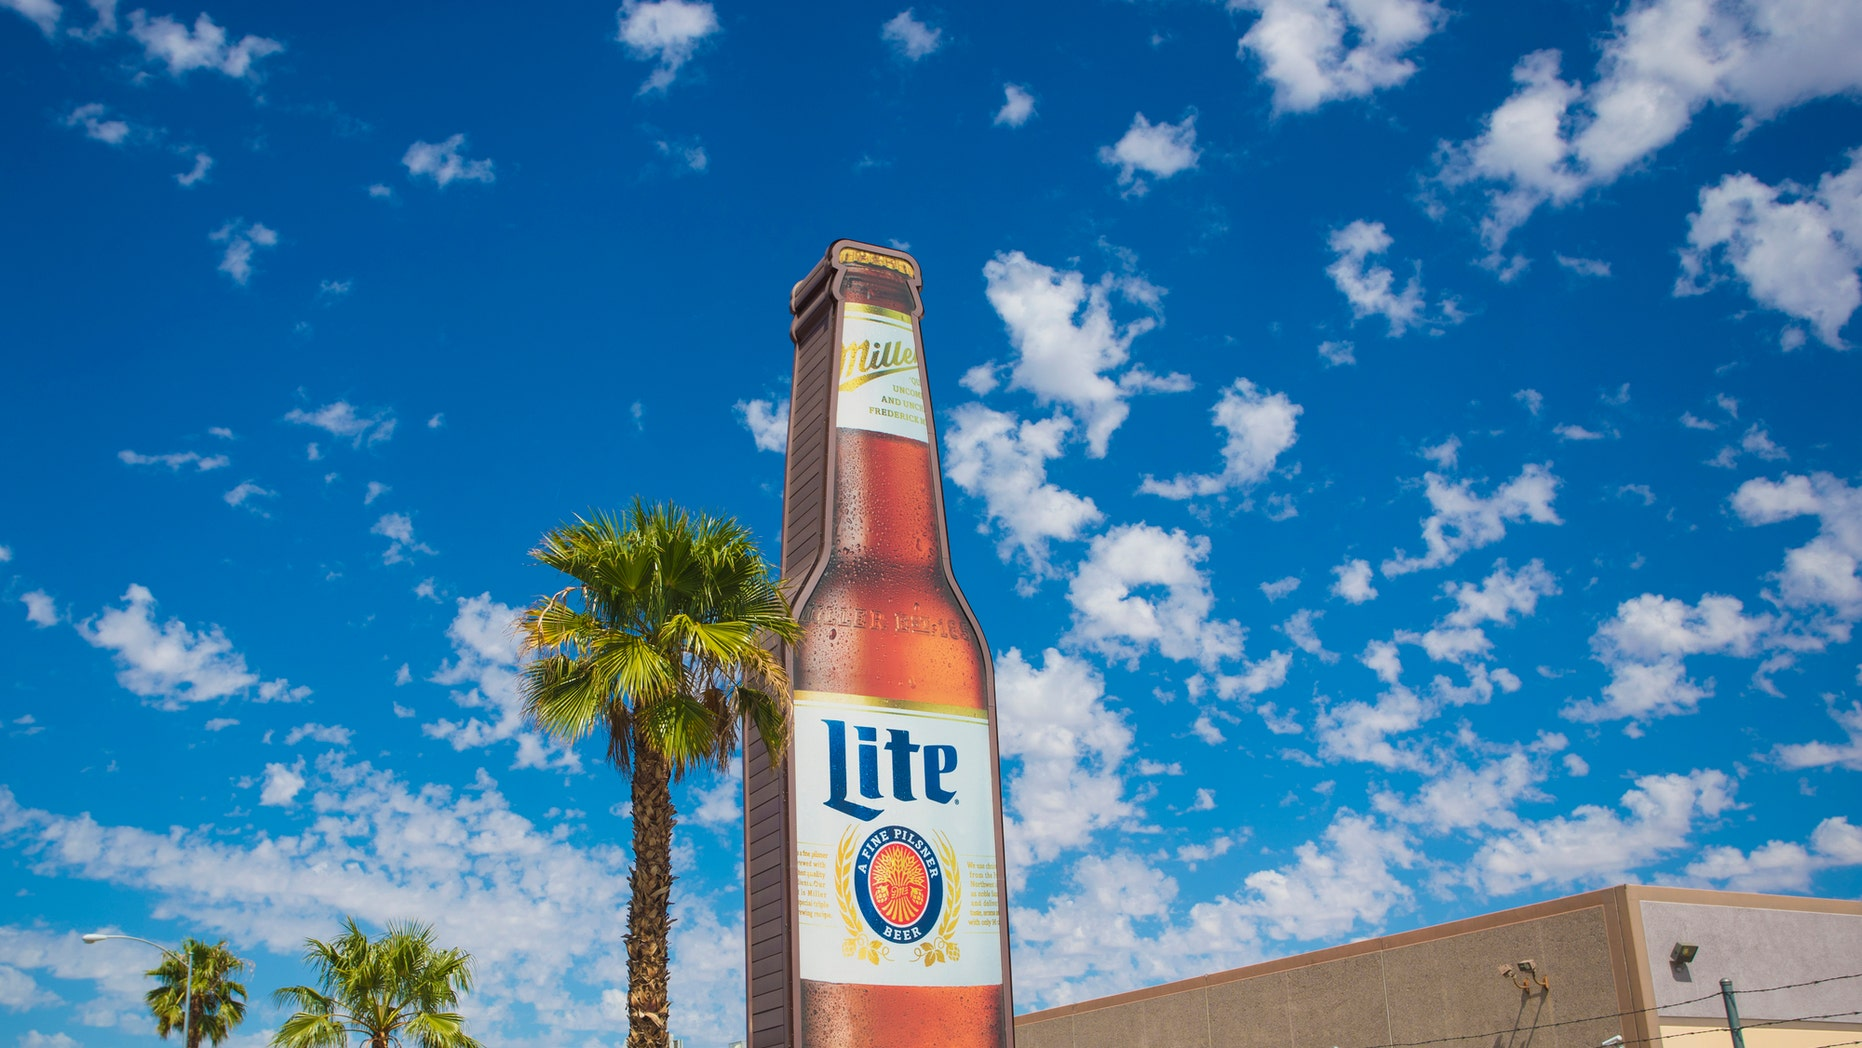 Las Vegas, USA - September 10, 2016: An editorial stock photo of a Miller Lite sign on the grounds of the Bonza Beverage Company in Las Vegas, Nevada. Bonanza Beverage has been distributing premium beverages in Las Vegas and servicing all of Southern Nevada.